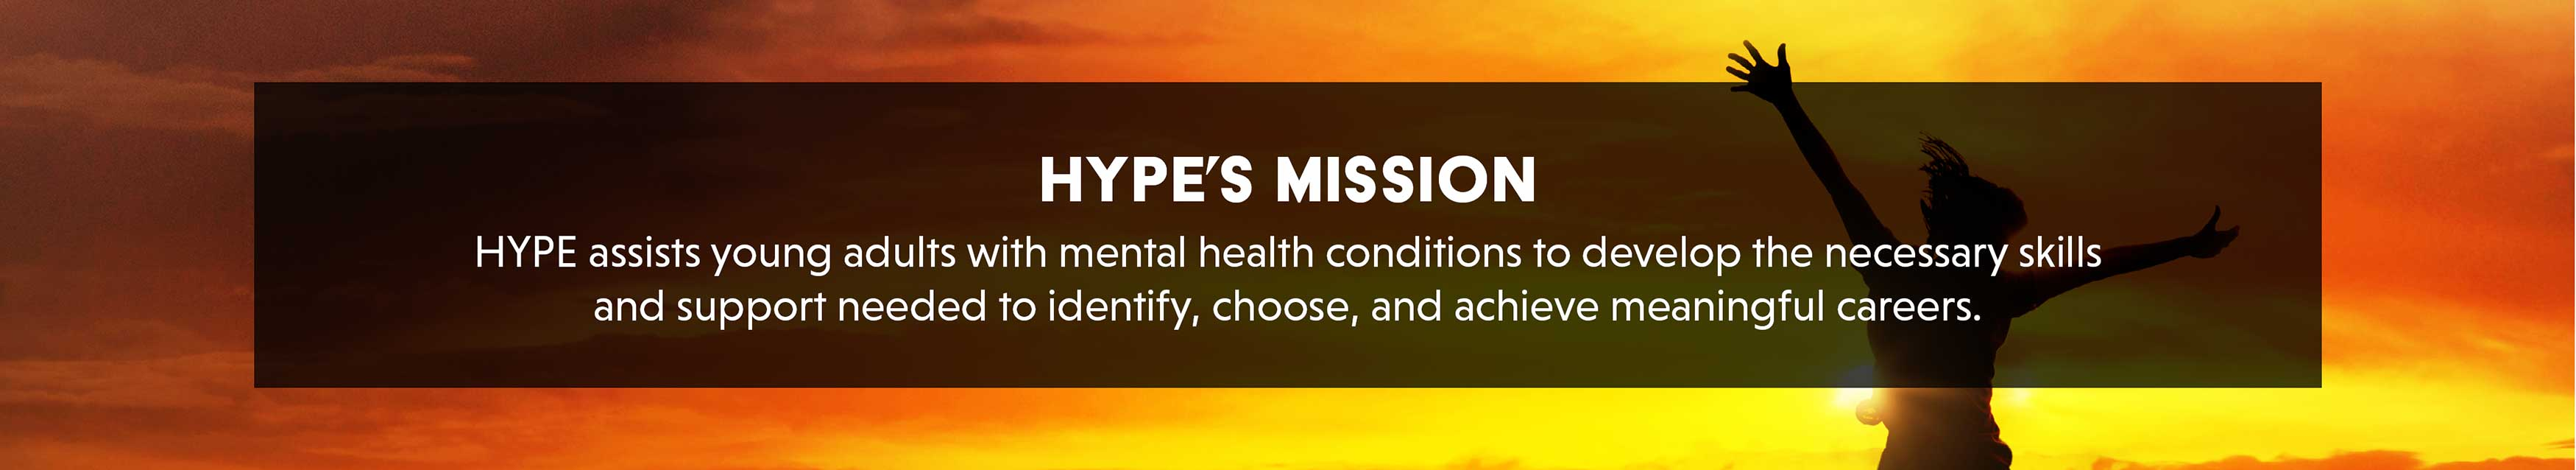 HYPE's Mission